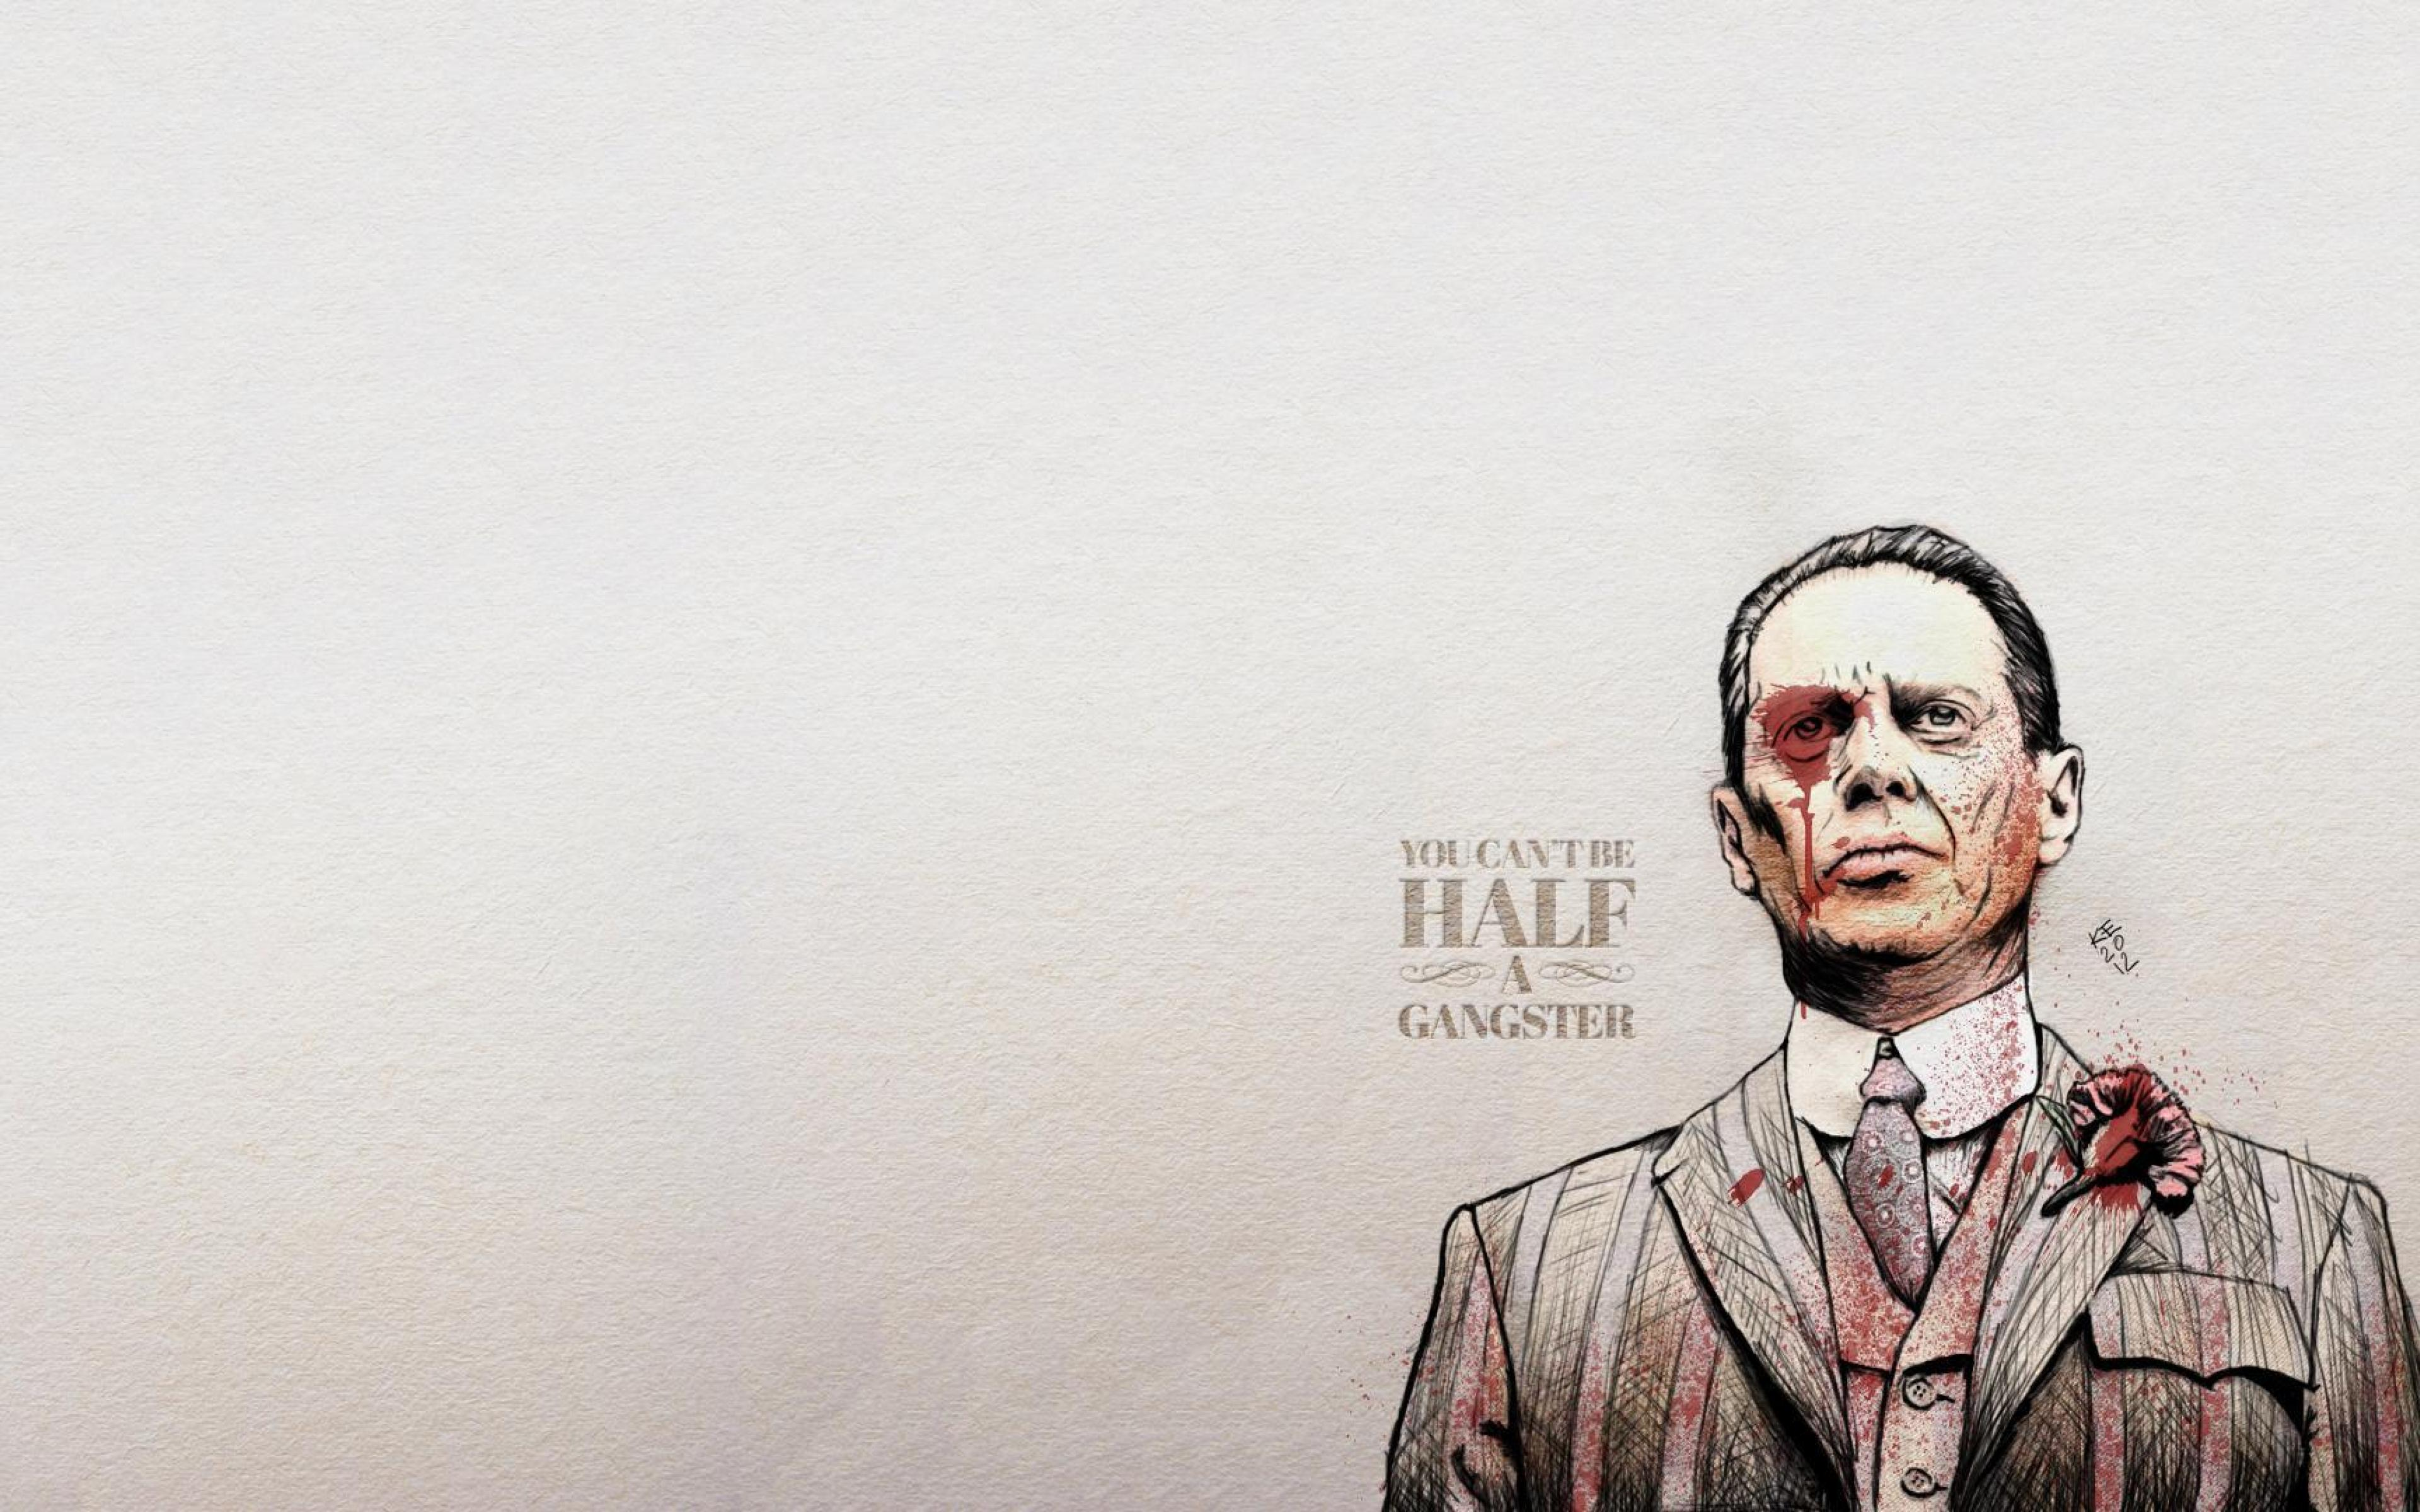 3840x2400 - Nucky Thompson Wallpapers 26